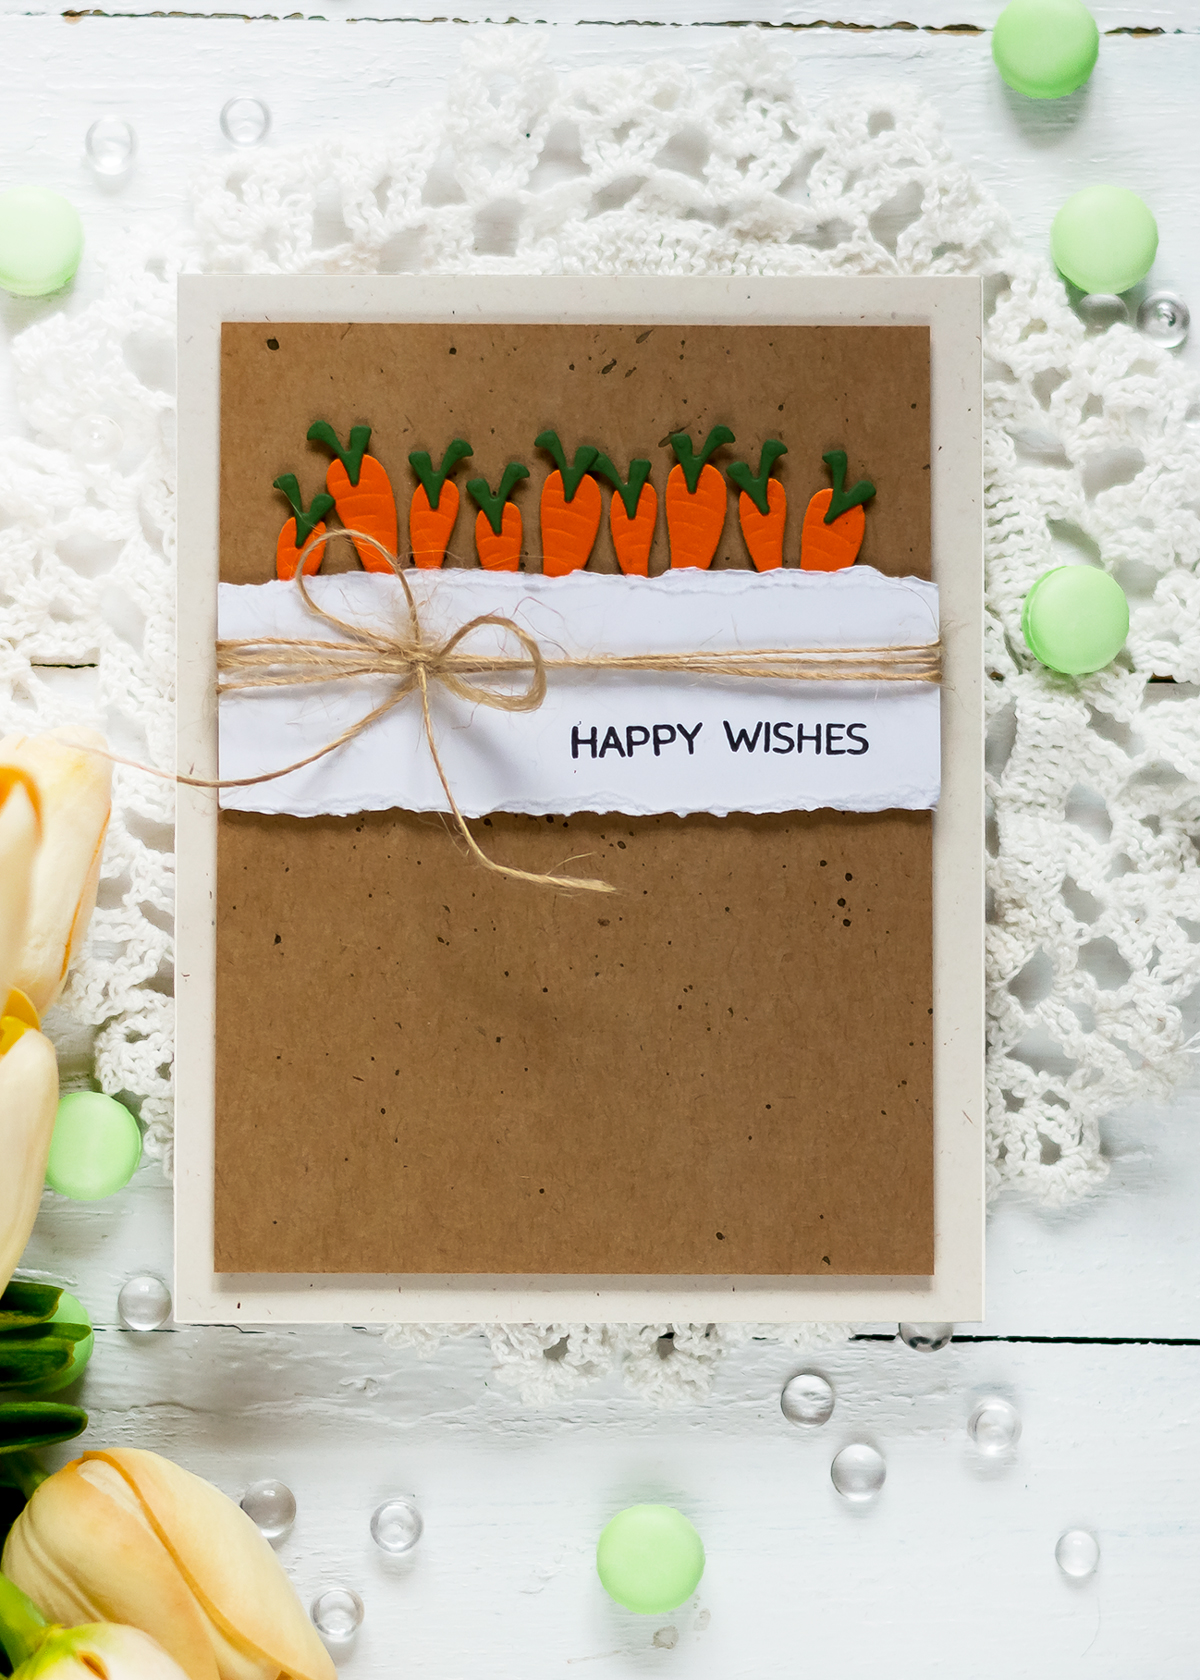 Spellbinders Small Die if the Month. Easter card with carrots. Card by Svitlana Shayevich